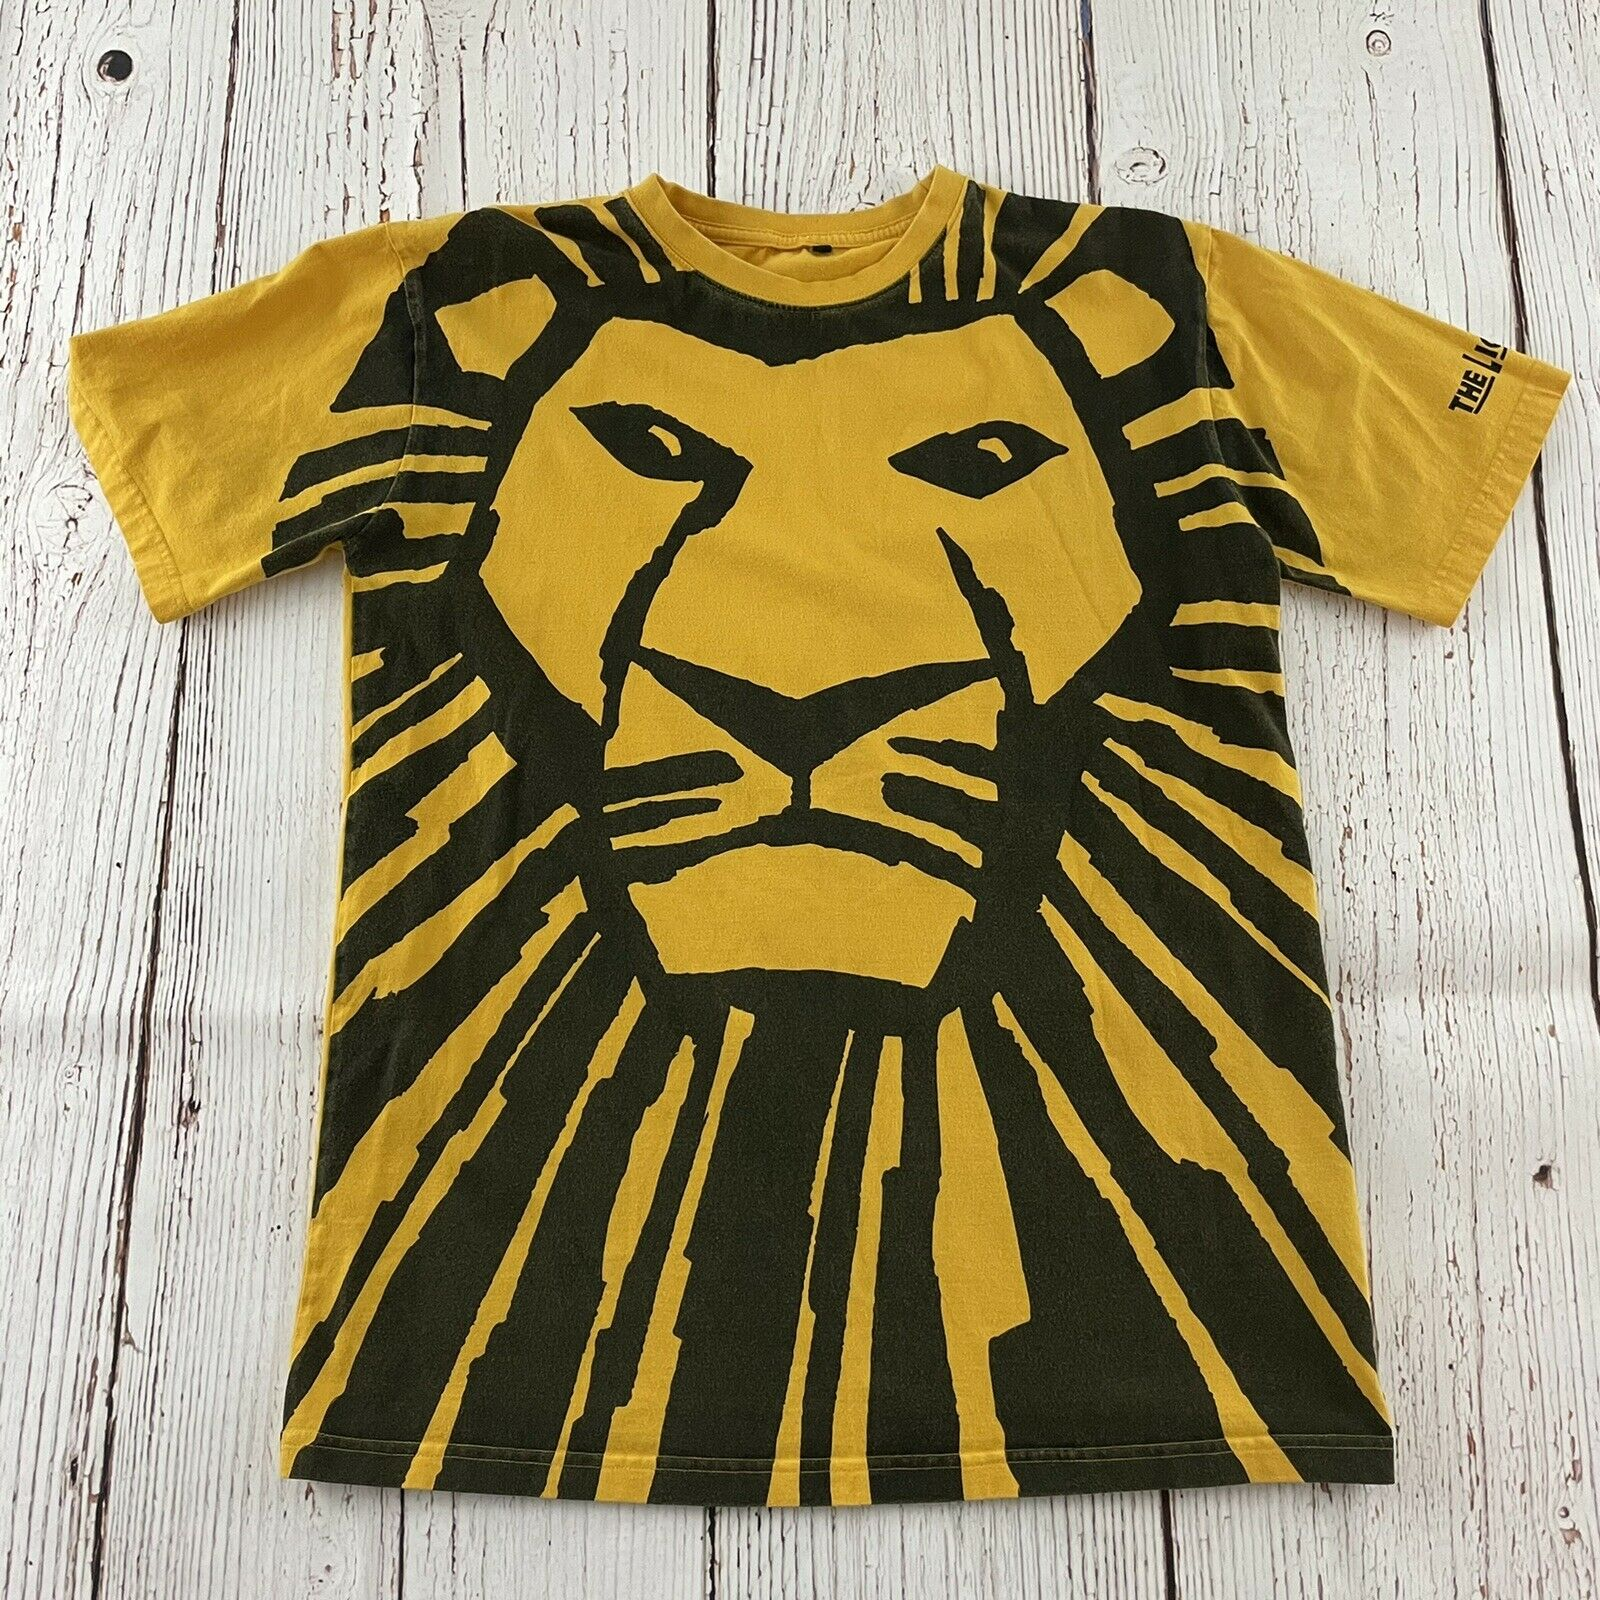 Product Image 1 - Lion King The Musical Large